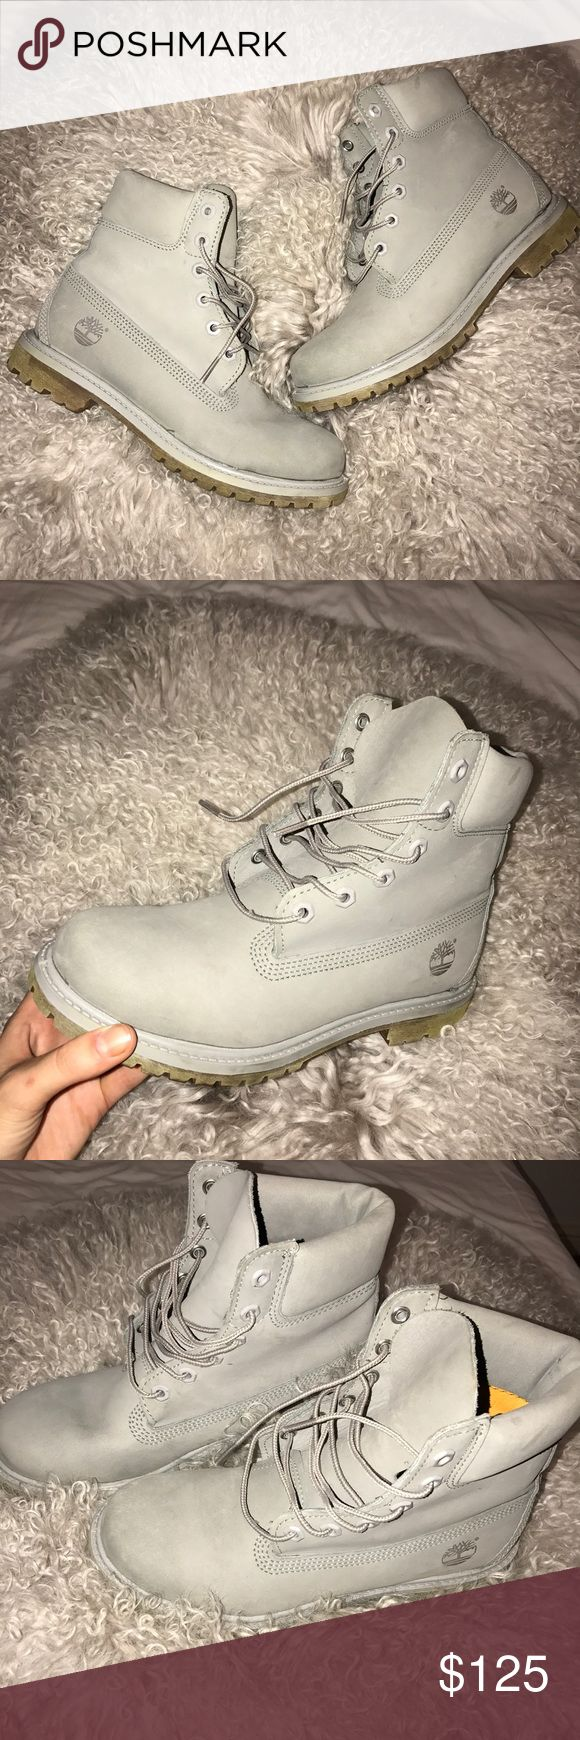 grey timberland boots 8 grey timberland boots, wore out only once! perfect condition size 8 Timberland Shoes Winter & Rain Boots